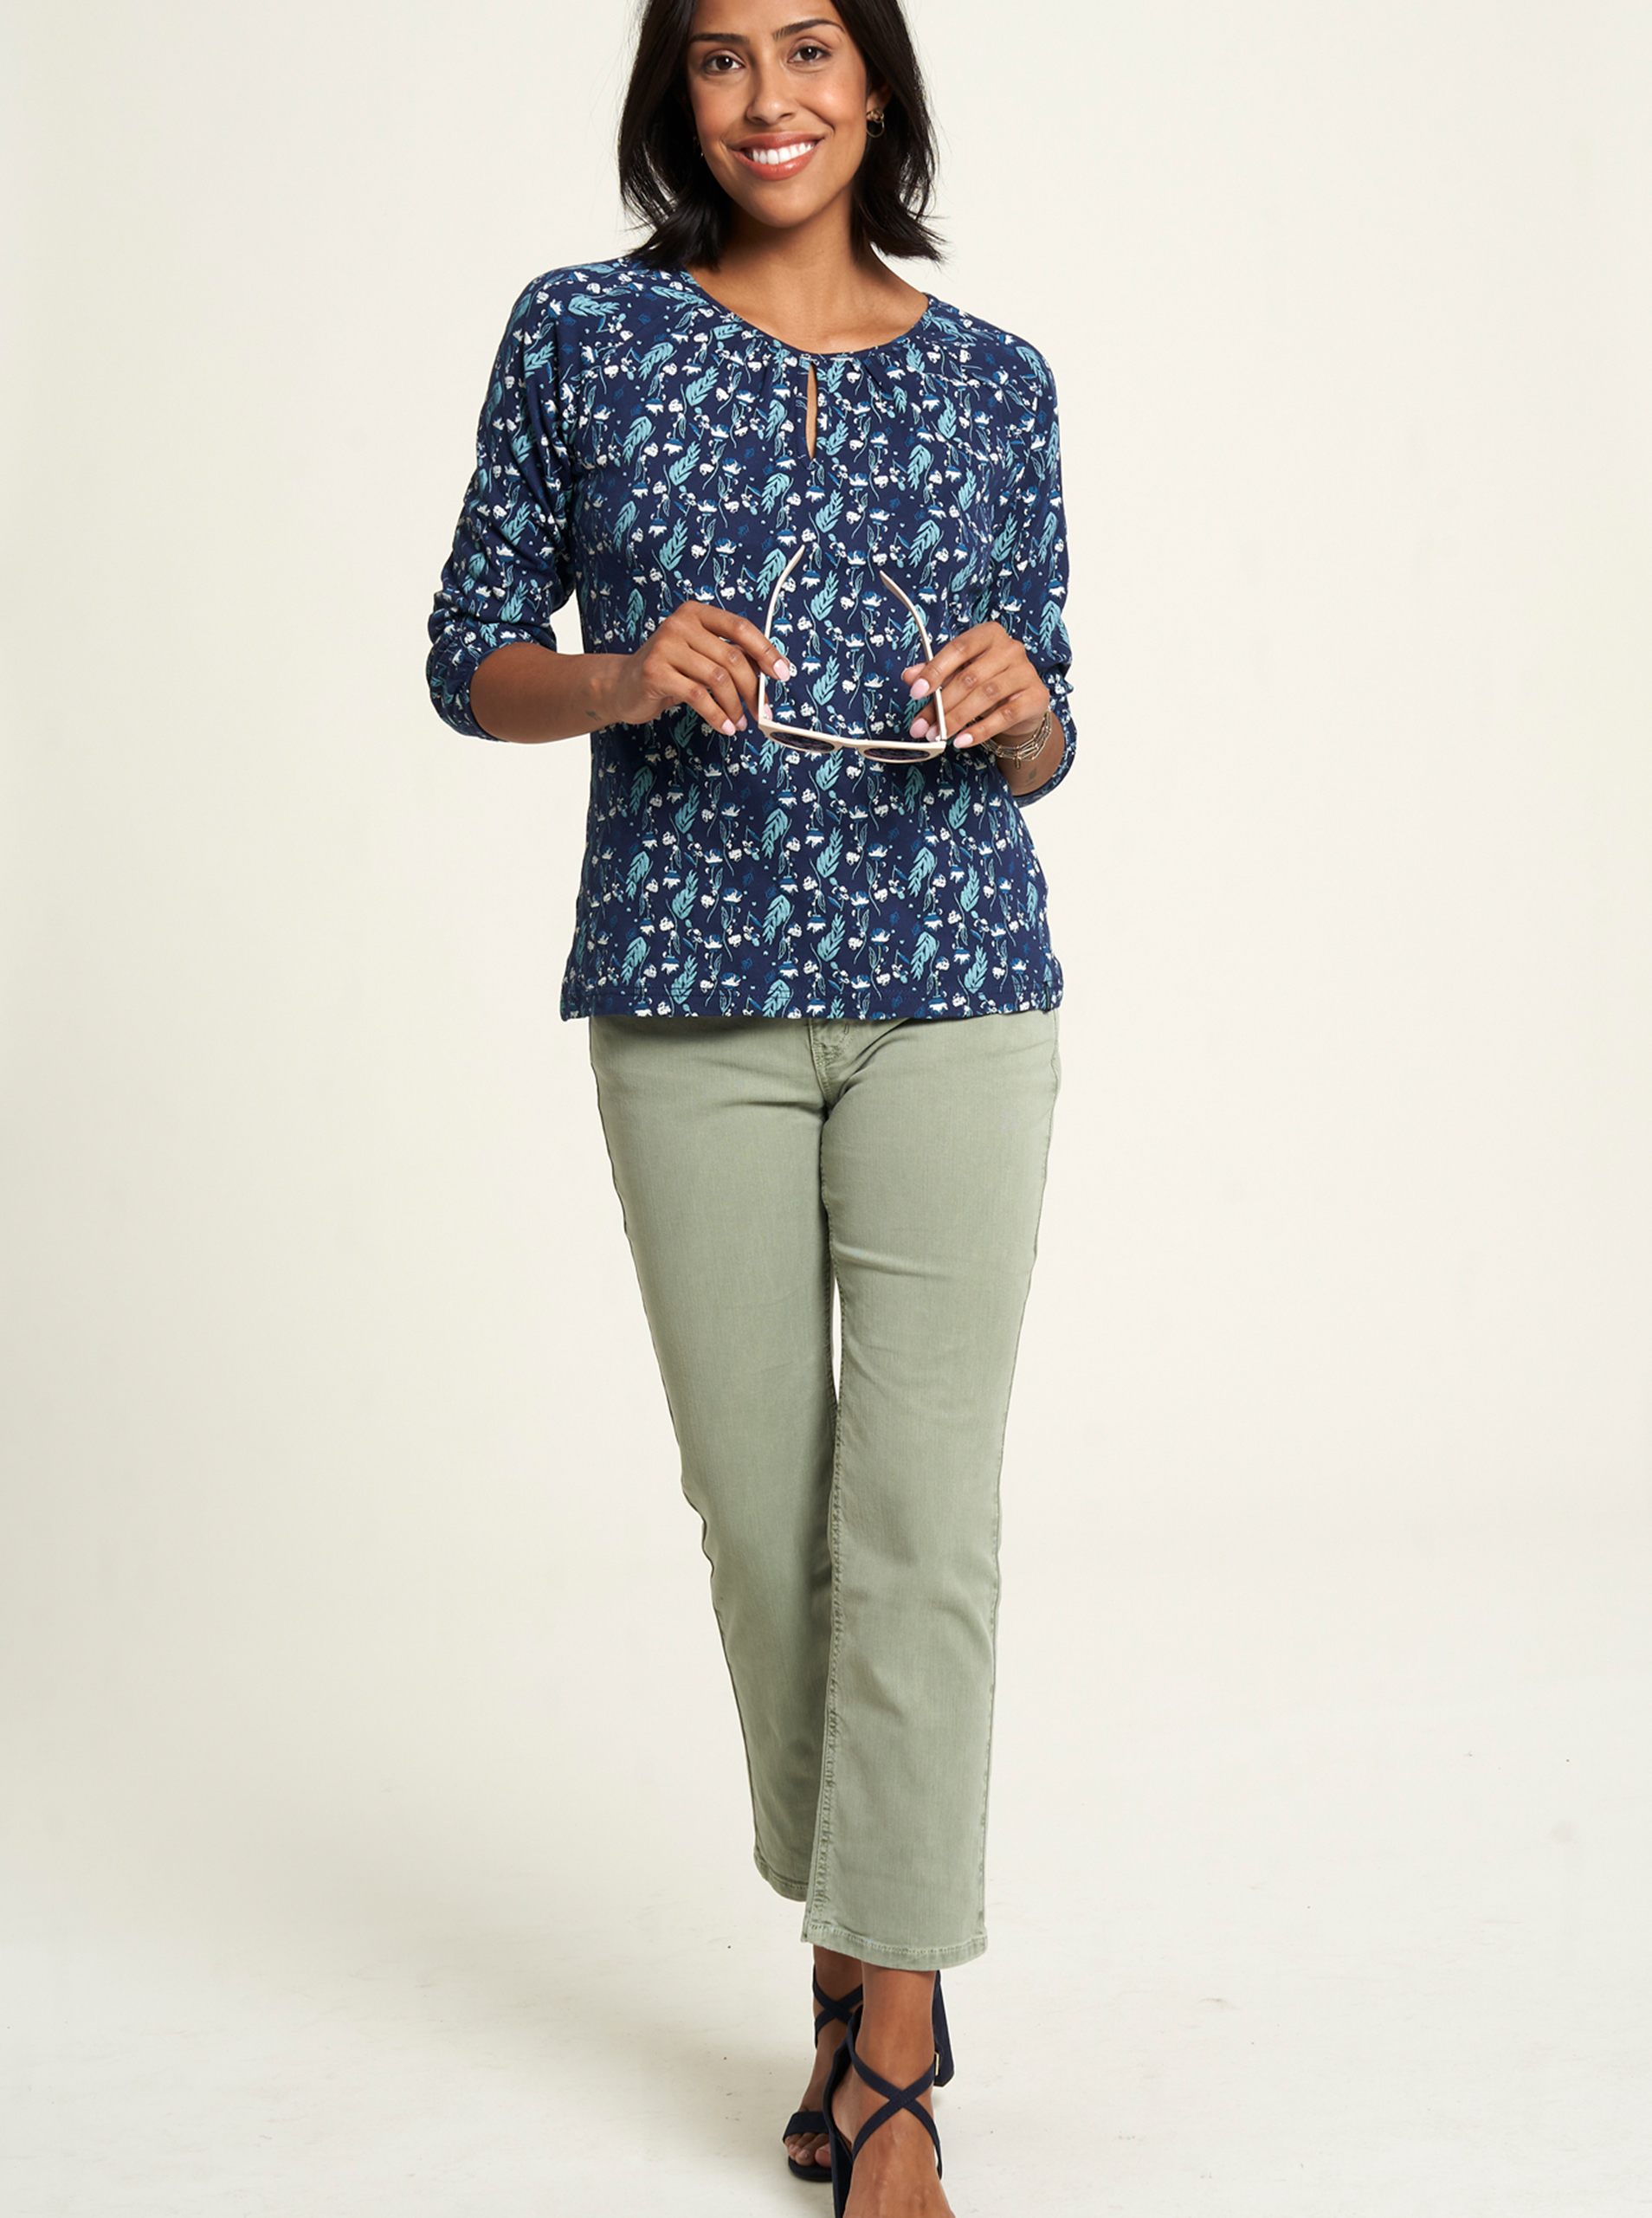 Tranquillo blue T-shirt with floral motif